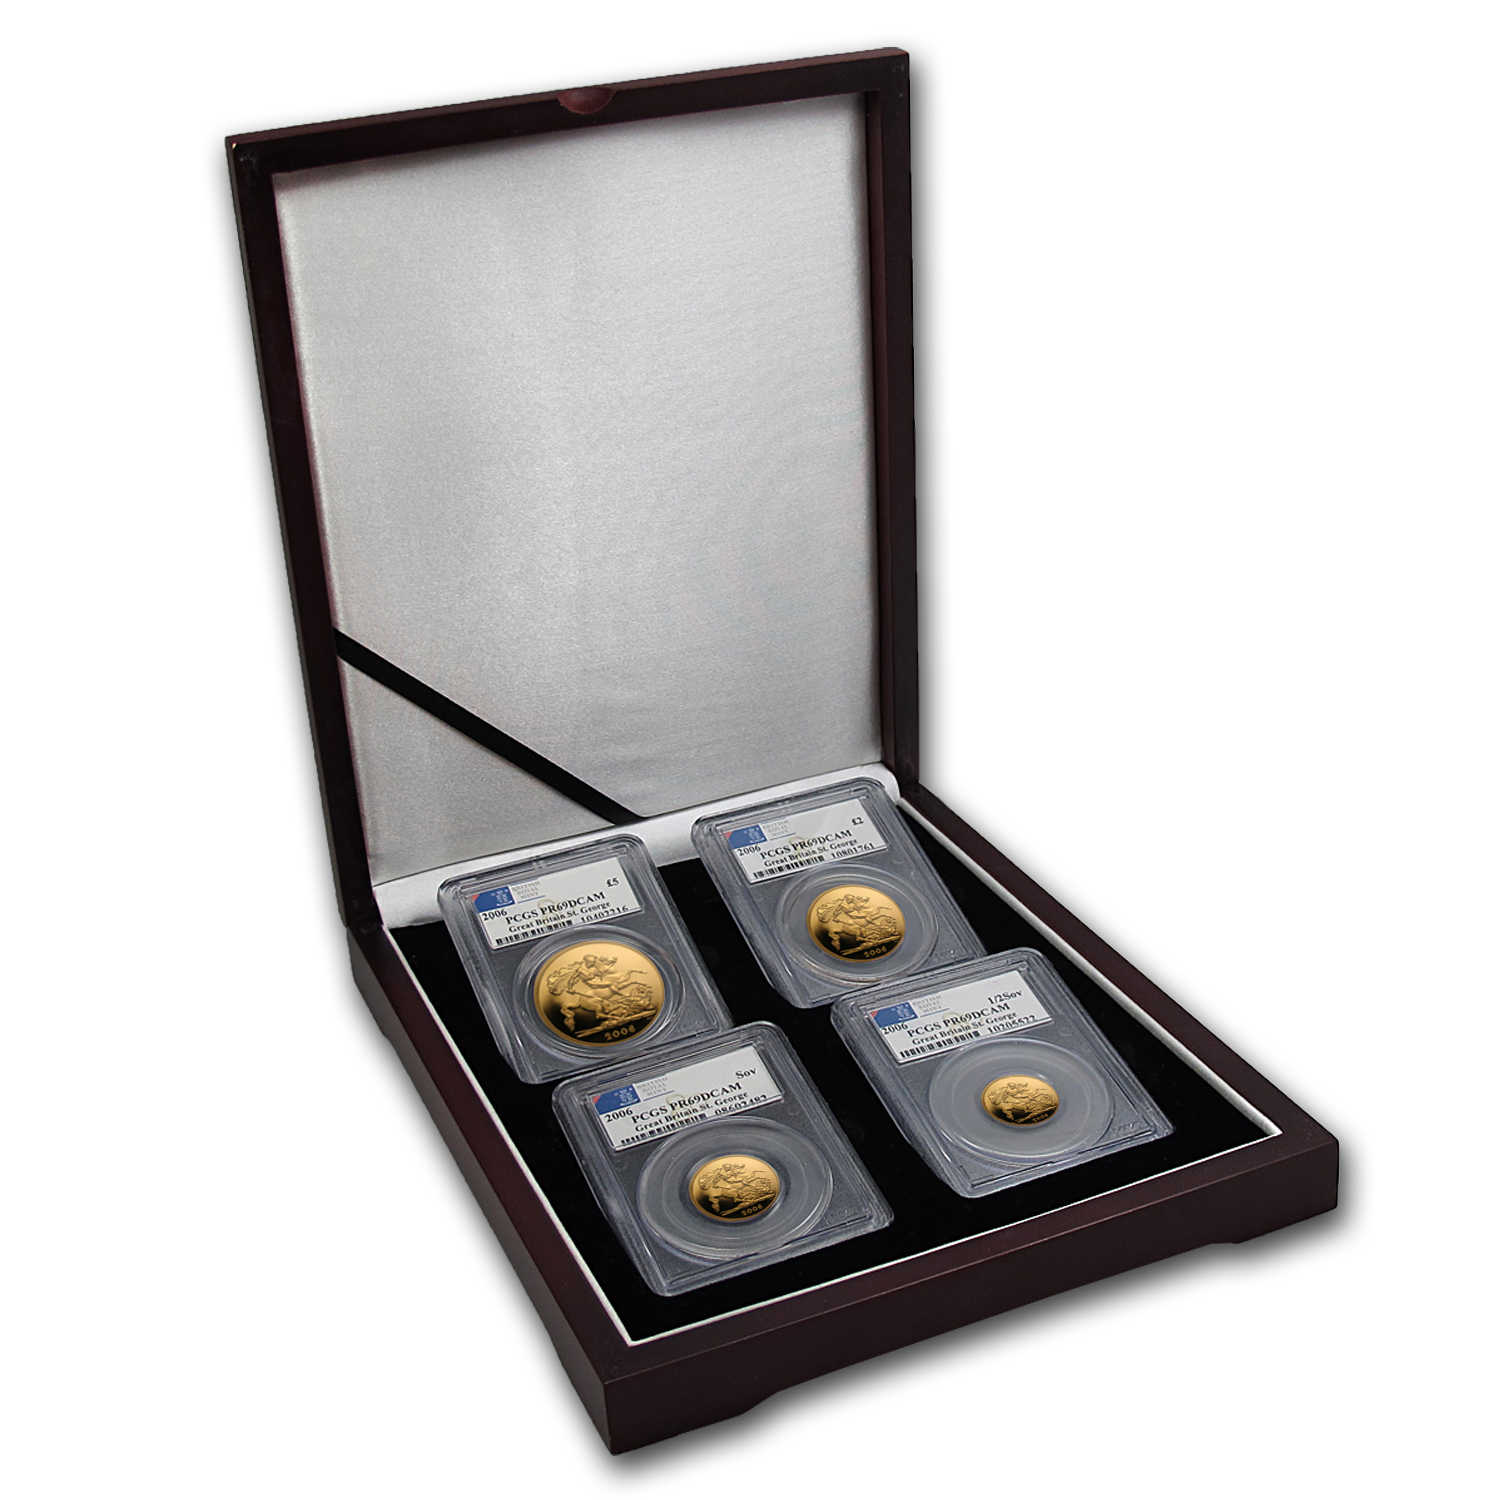 2006 Great Britain 4-Coin Gold Sovereign Deluxe Set PR-69 PCGS